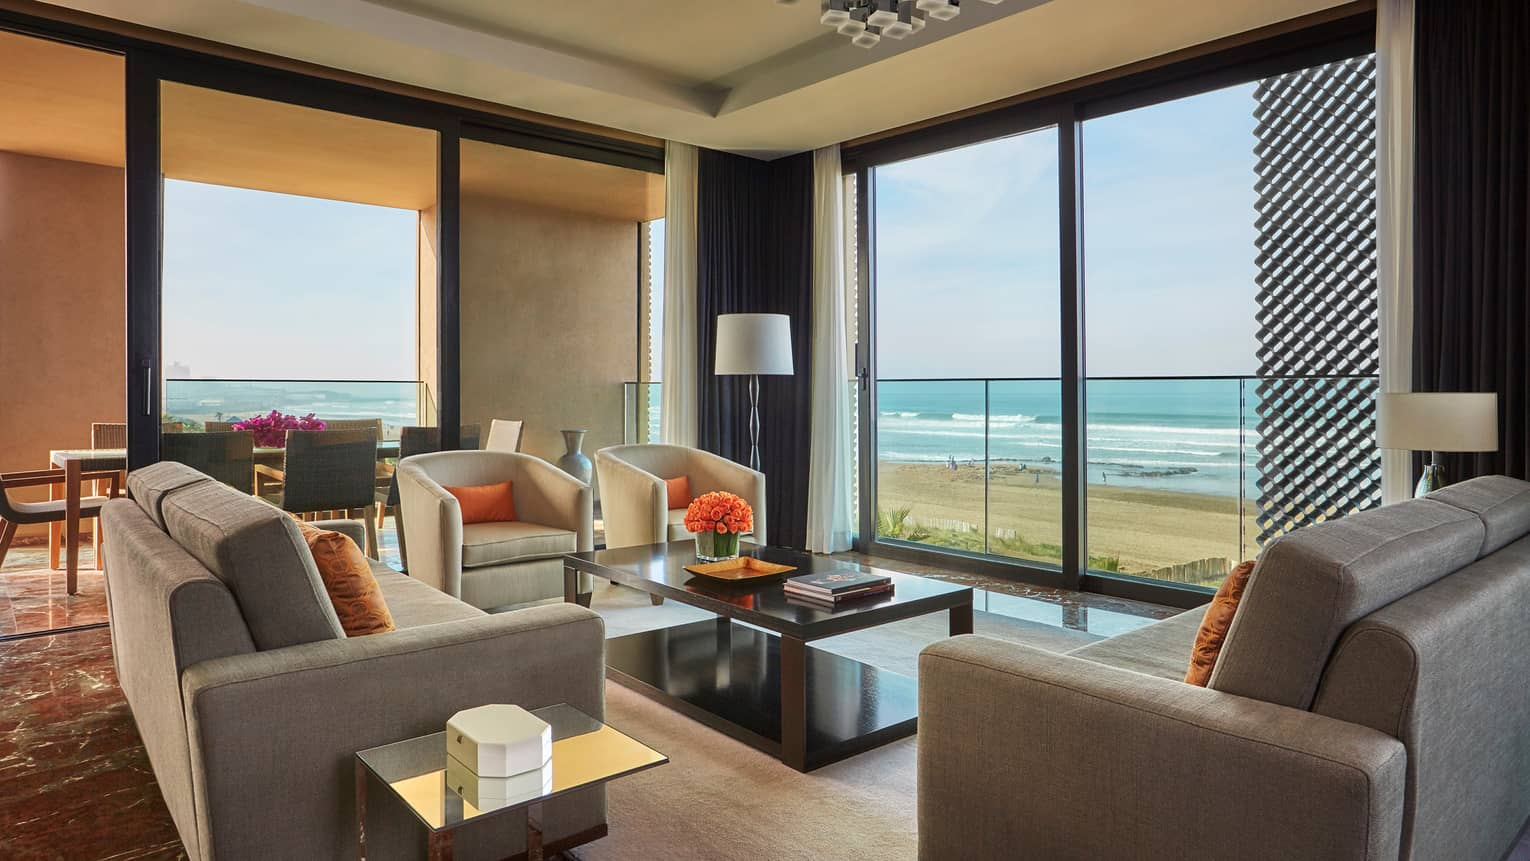 Imperial Suite Ocean View living room sofas, armchairs, corner windows with view of beach, Atlantic